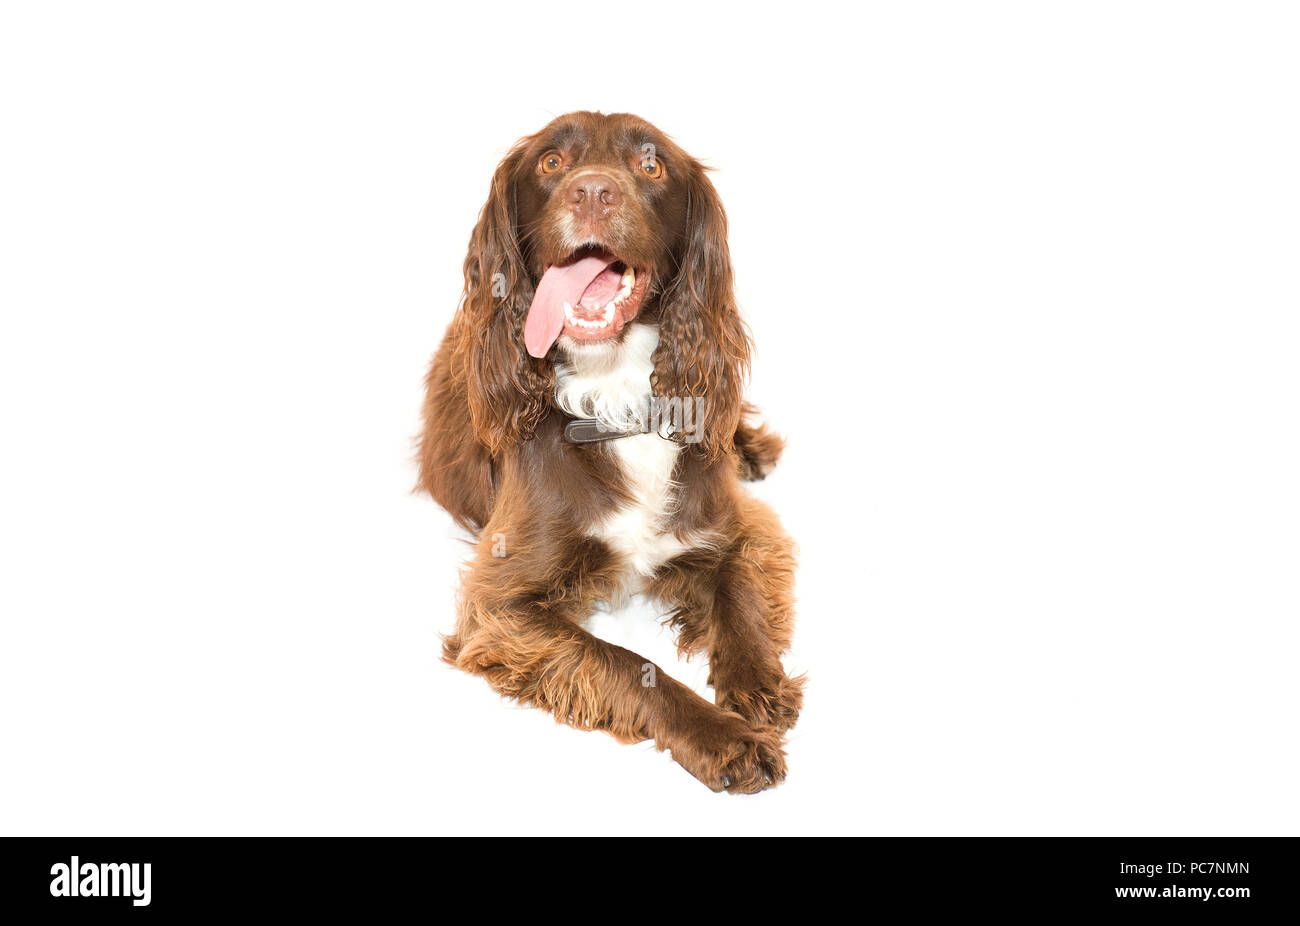 Male Sprocker Spaniel sat down on isolated white background - Stock Image